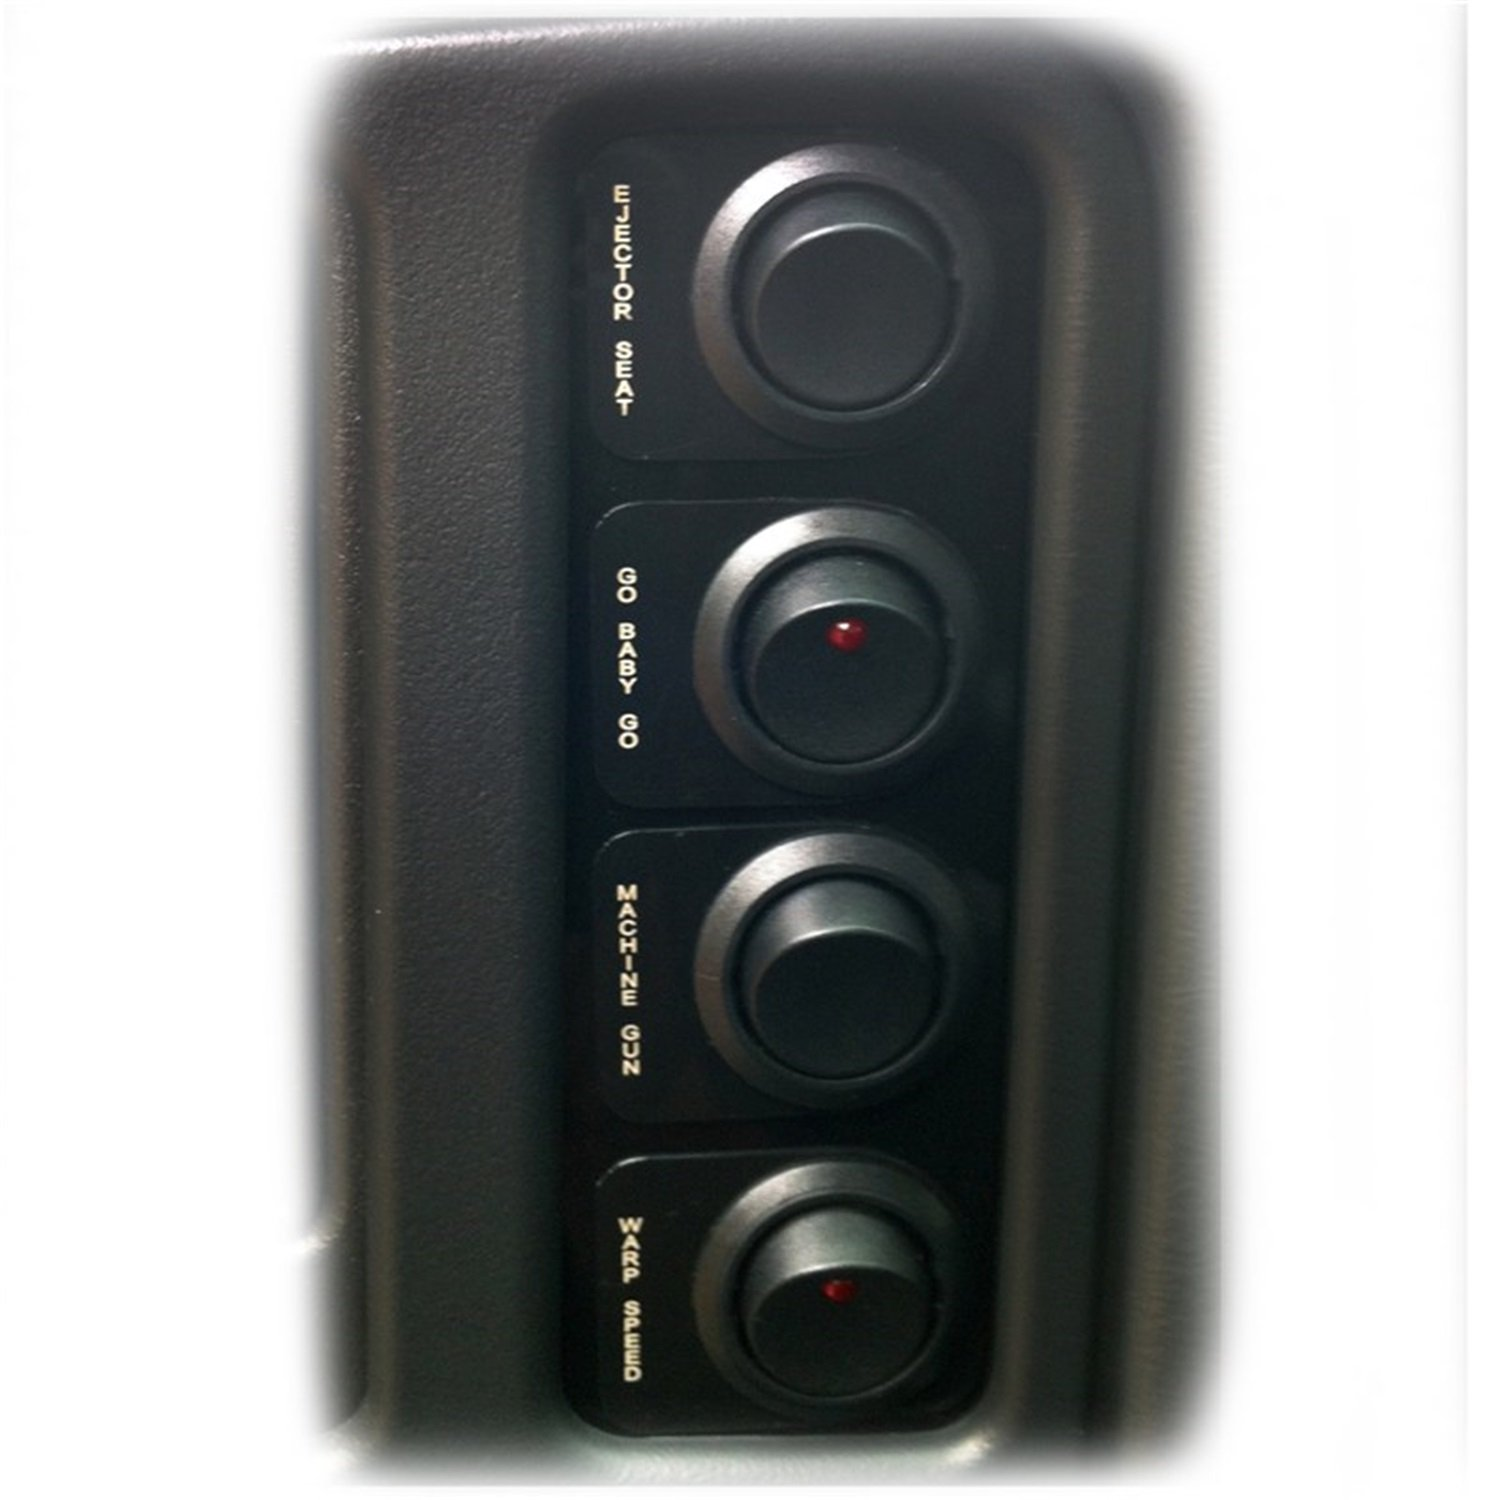 Nitrous Express (15772) Custom Switch Panel for GM Truck by Nitrous Express